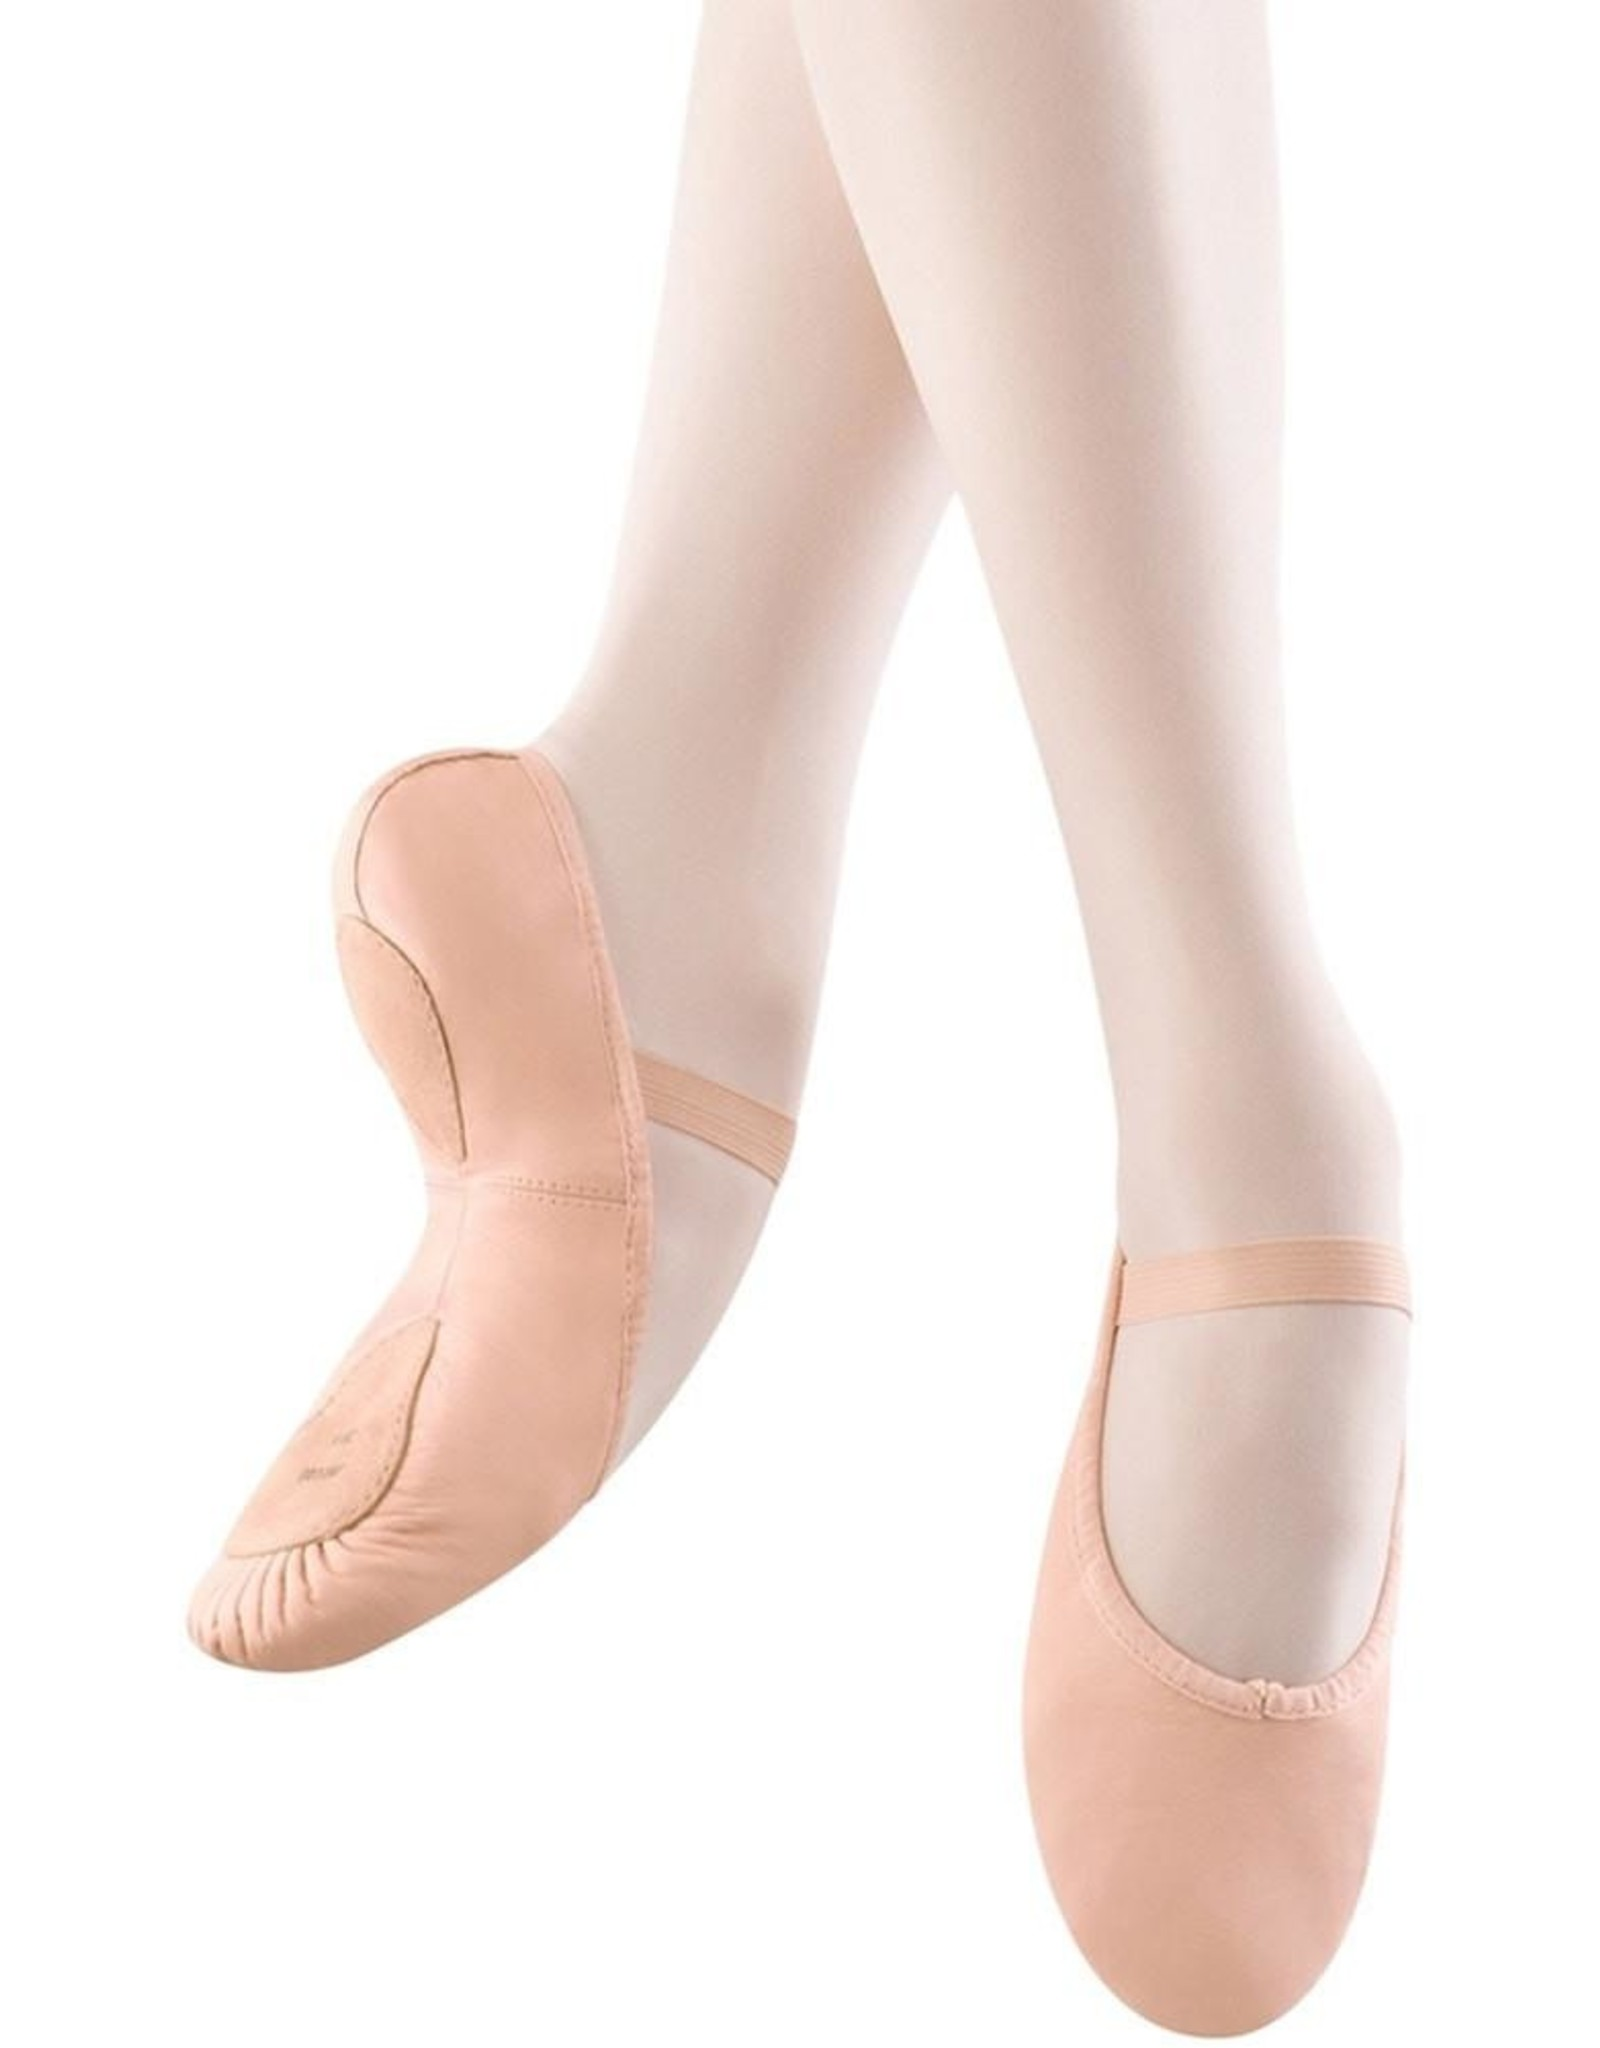 BLOCH DANSOFT ll LEATHER SPLIT SOLE W/STRECH ARCH INSERT BALLET SLIPPERS (SO258L)